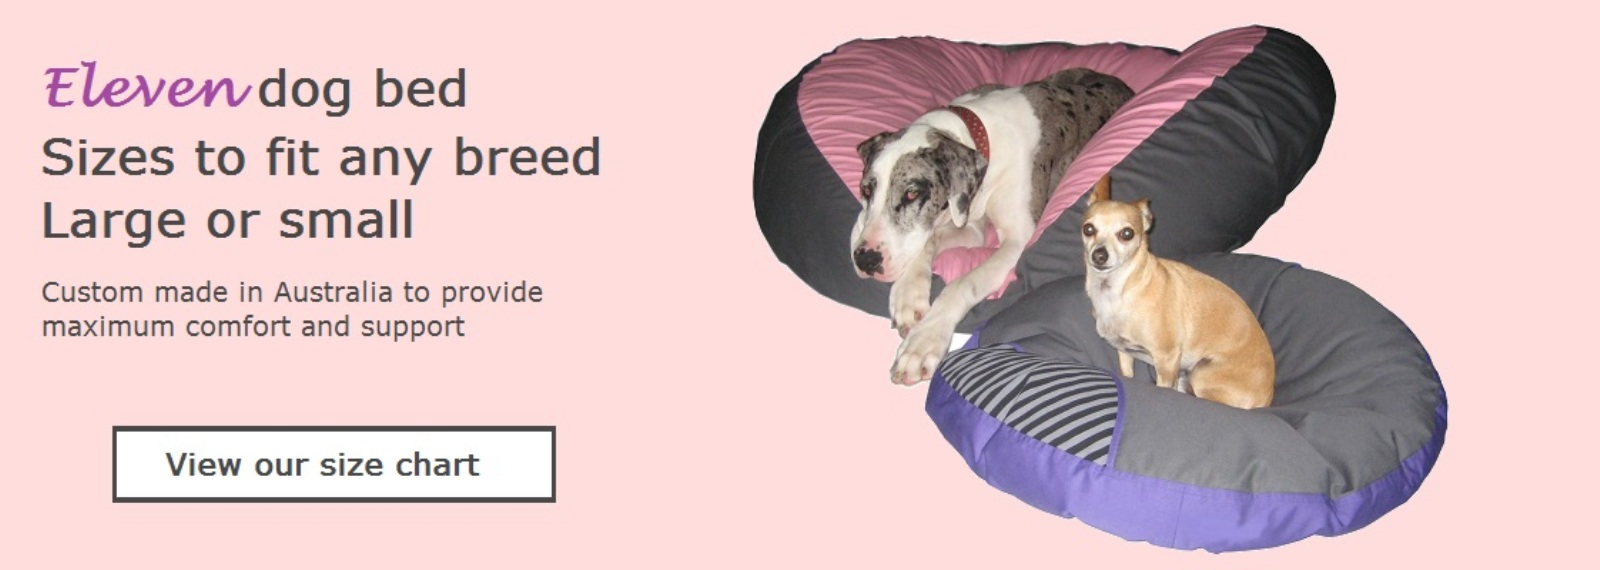 11-pet-bed-sizes